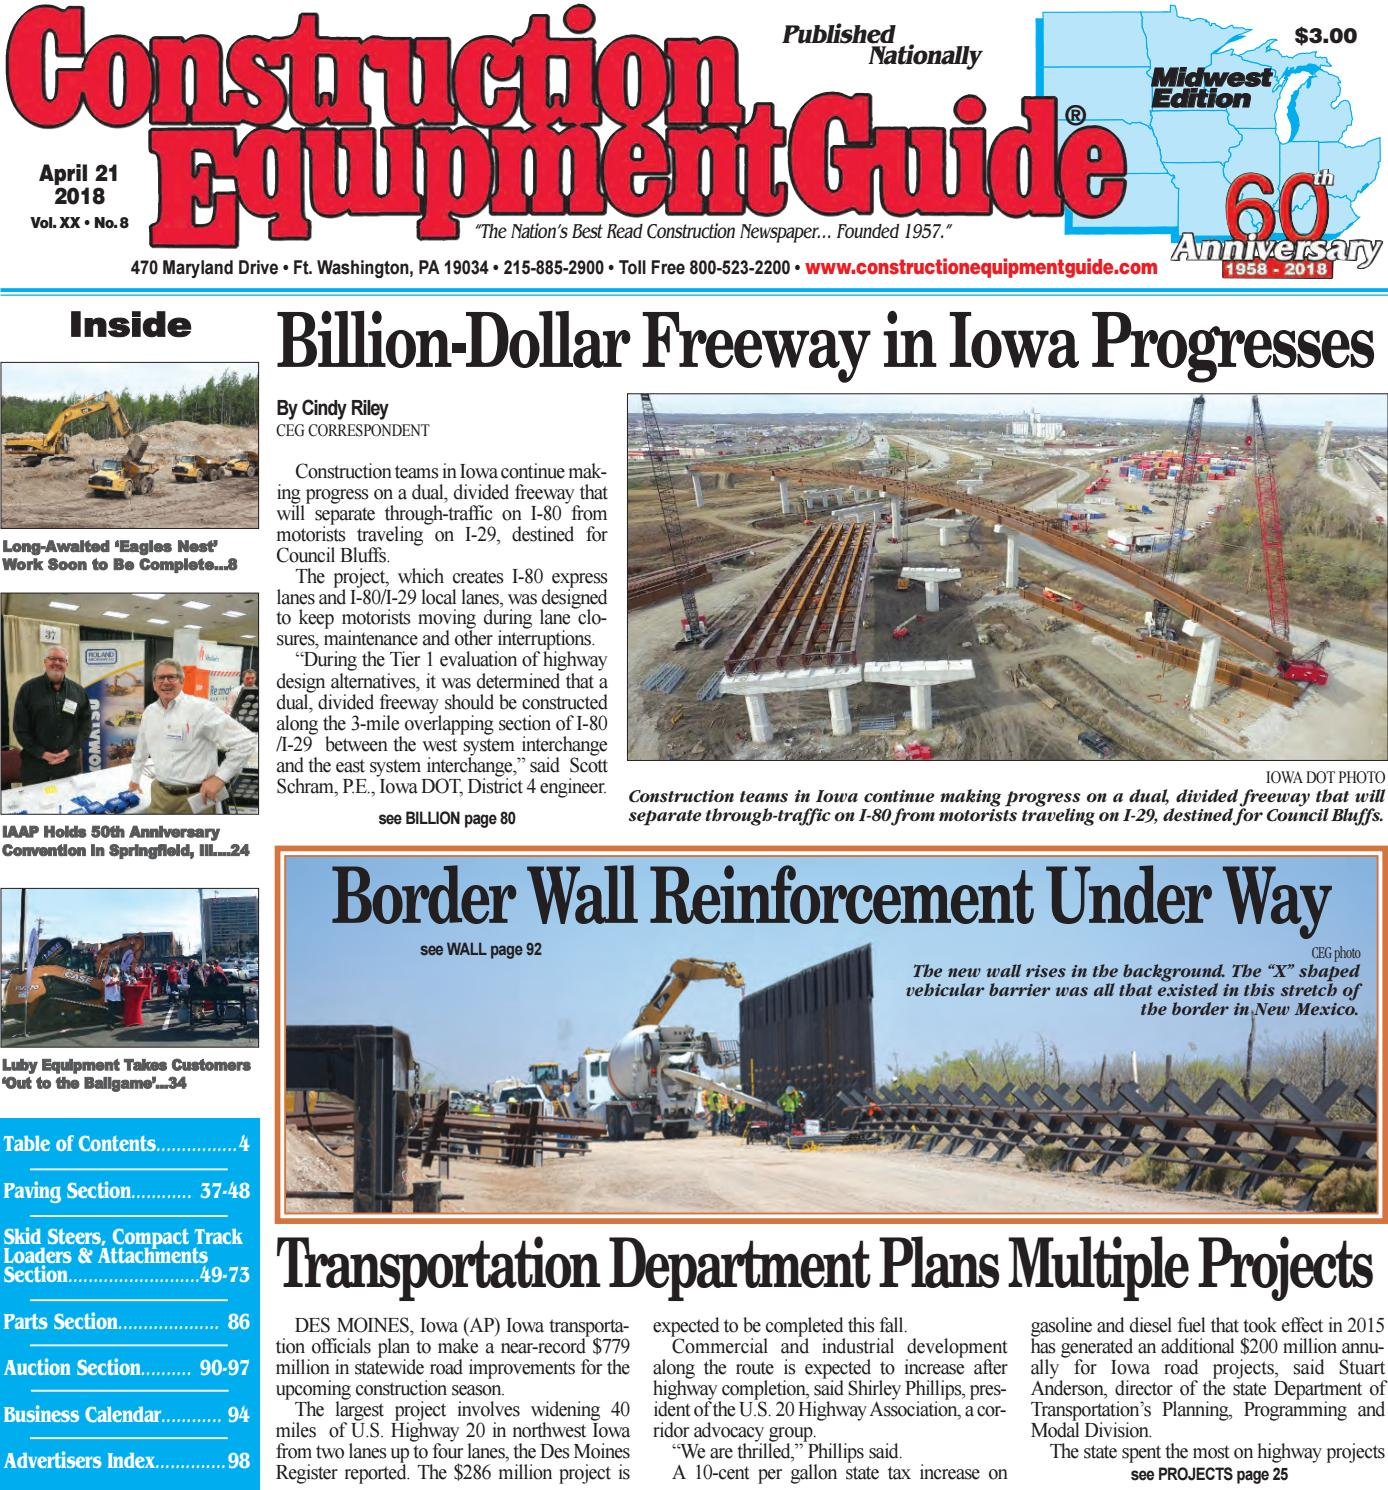 Midwest 8 April 21, 2018 by Construction Equipment Guide - issuu